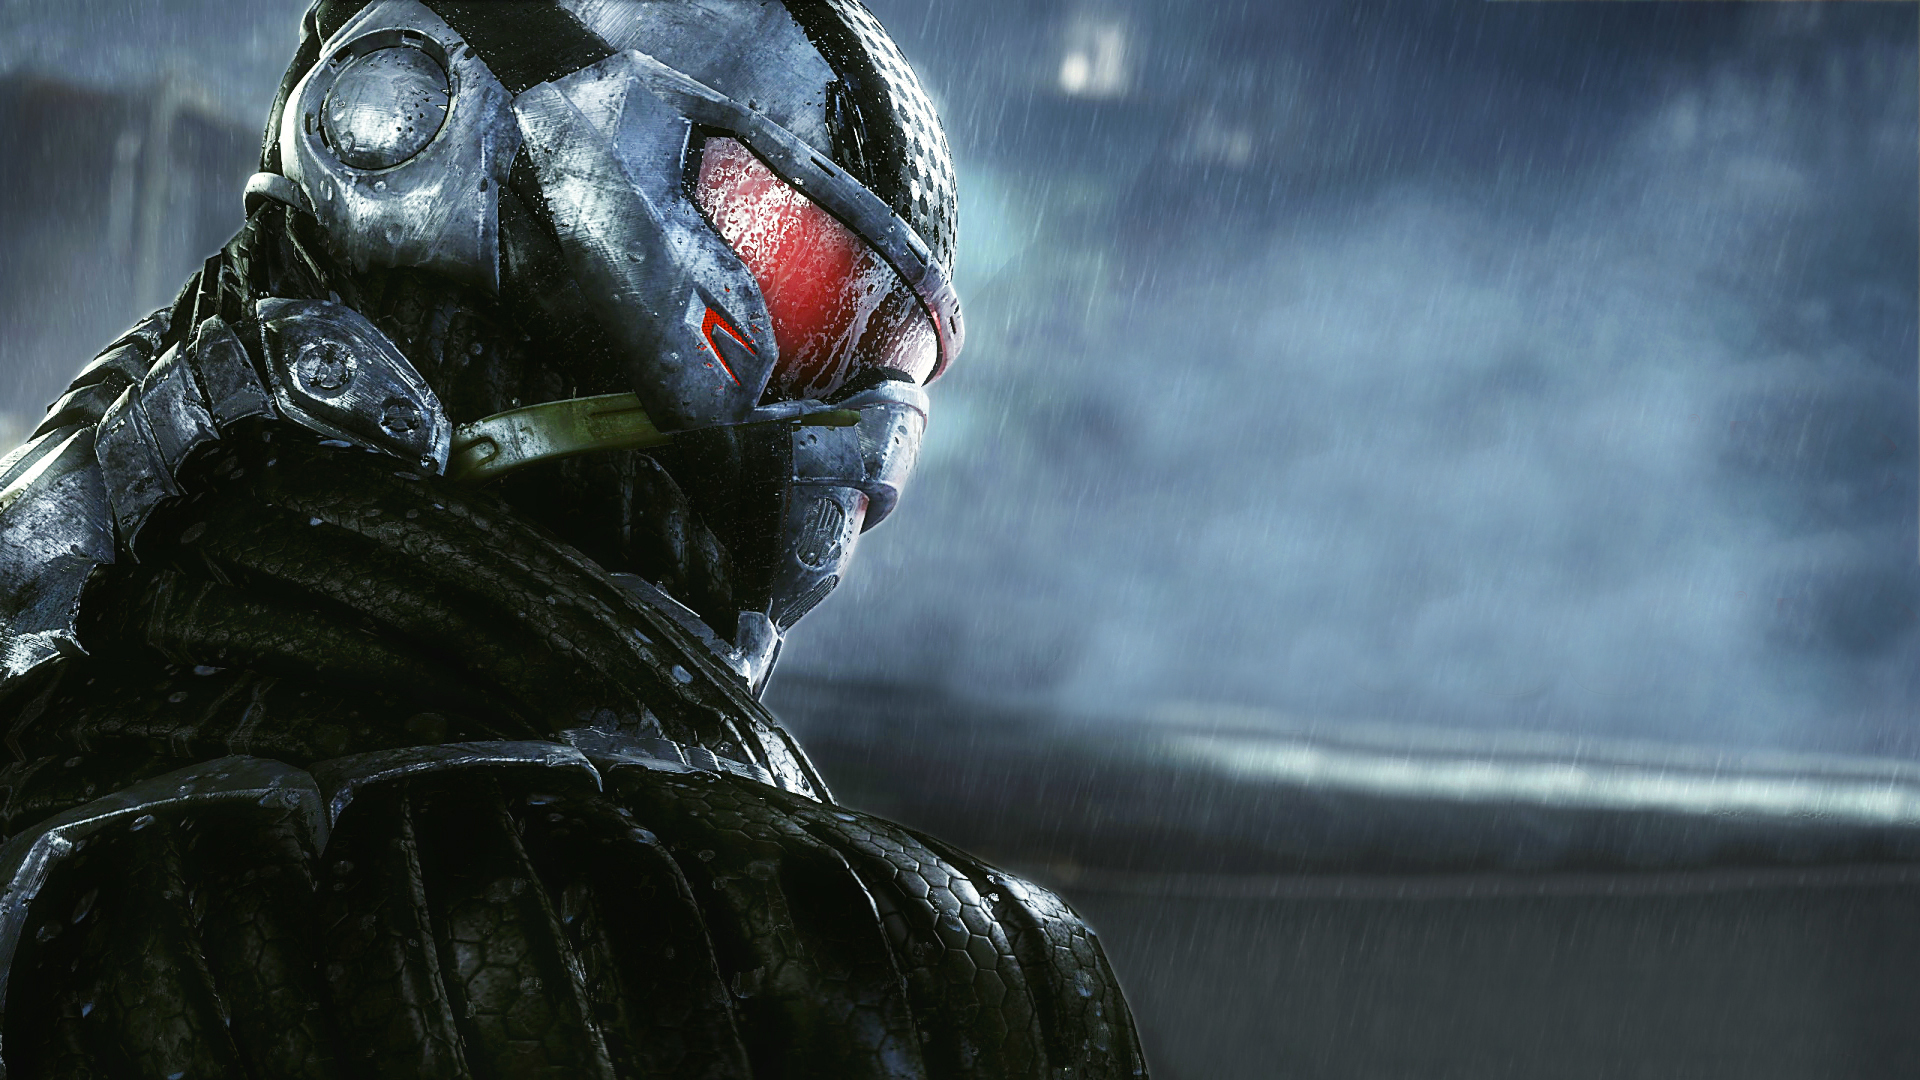 Crysis 3 Wallpaper 1080p - HD Desktop Wallpapers